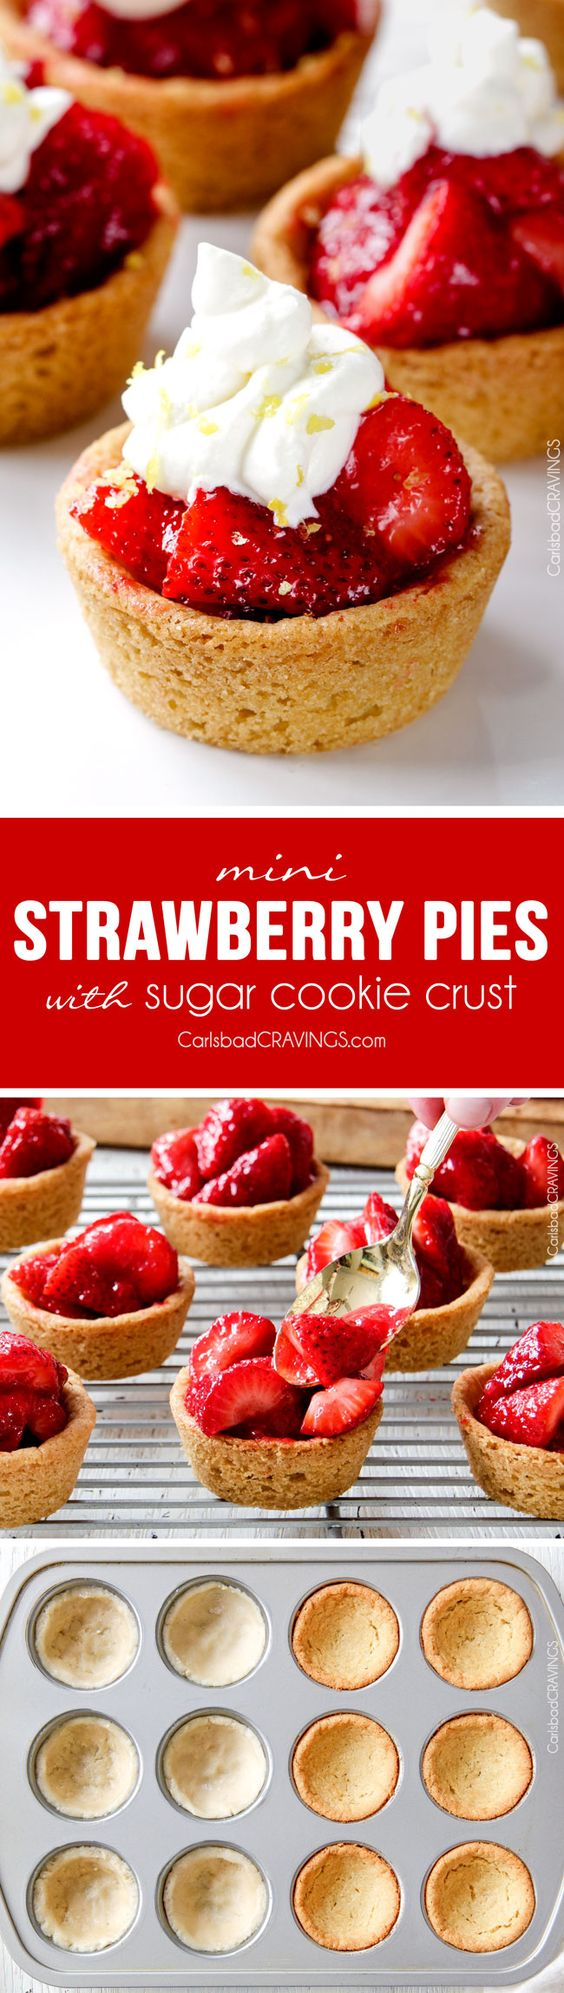 Mini Strawberry Pies Recipe via Carlsbad Cravings - The best strawberry pie filling nestled in easy soft, buttery, sugar cookie crusts make the most adorable, crowd pleasing and delicious Mini Strawberry Pies! And they are make ahead for stress free entertaining! The BEST Bite Size Dessert Recipes - Mini, Individual, Yummy Treats, Perfectly Pretty for Your Baby and Bridal Showers, Birthday Party Dessert Tables and Holiday Celebrations!